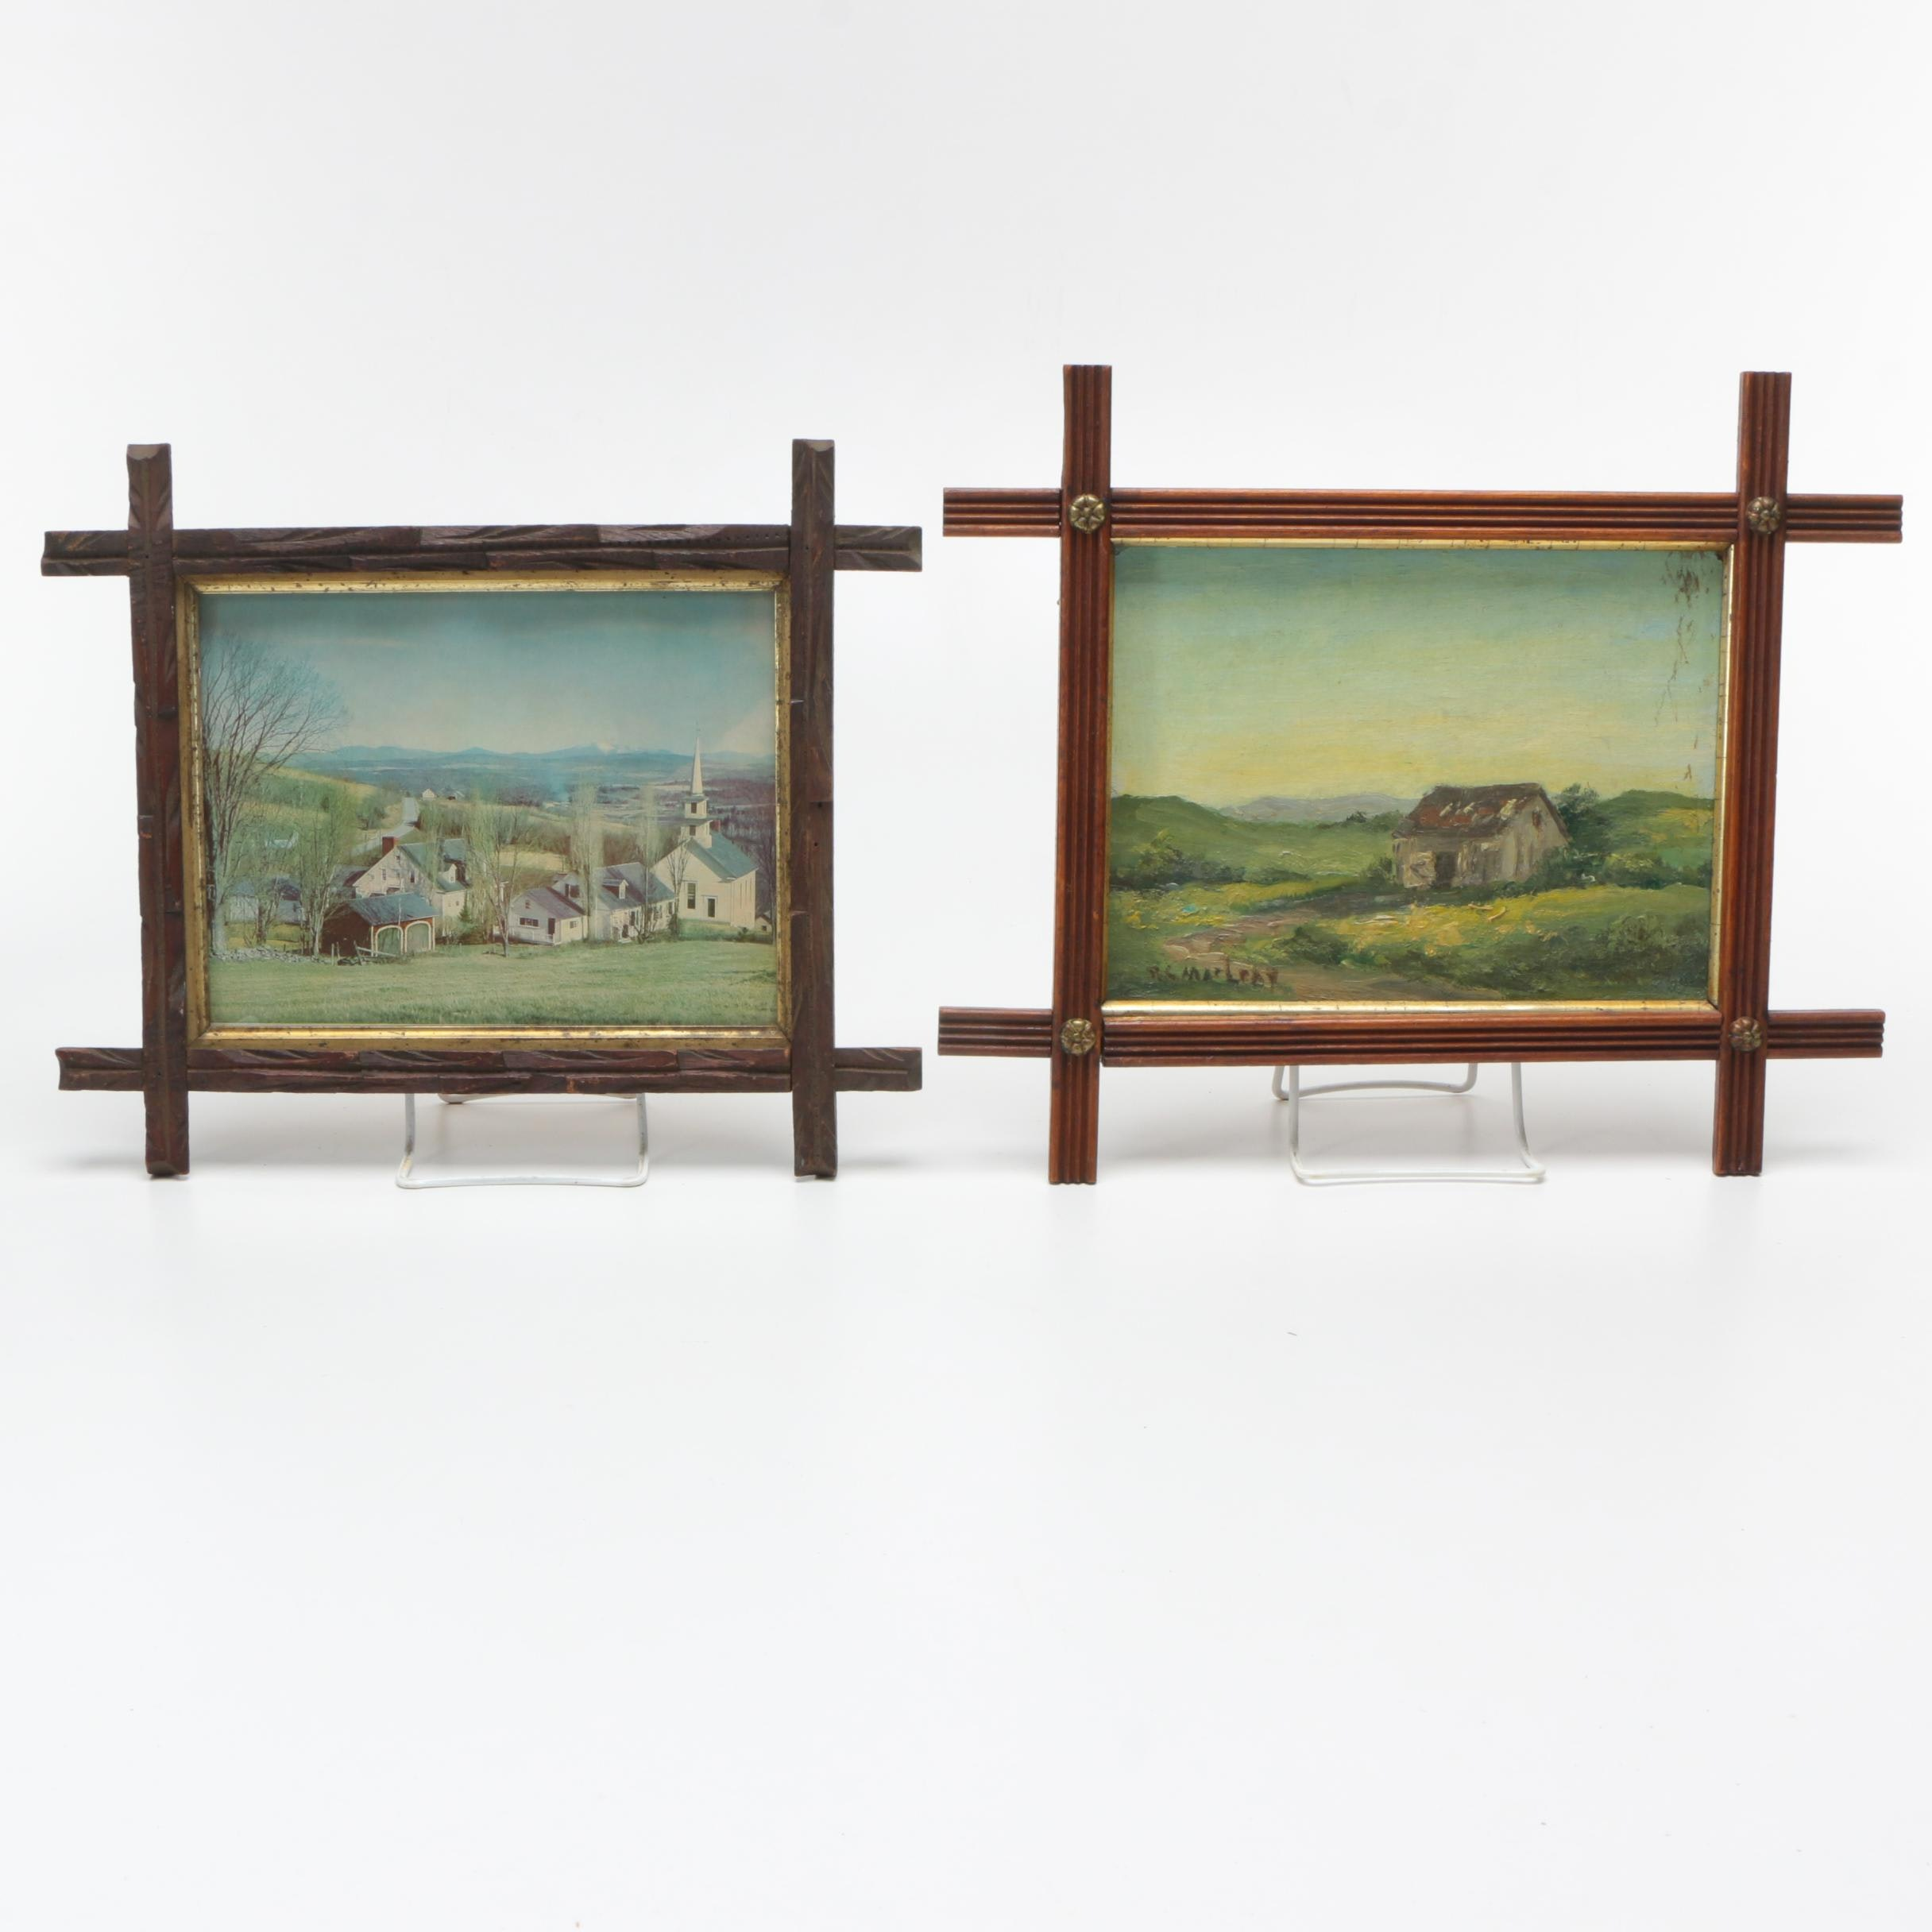 Oil Painting and Offset Lithograph of Idyllic Pastoral Landscapes